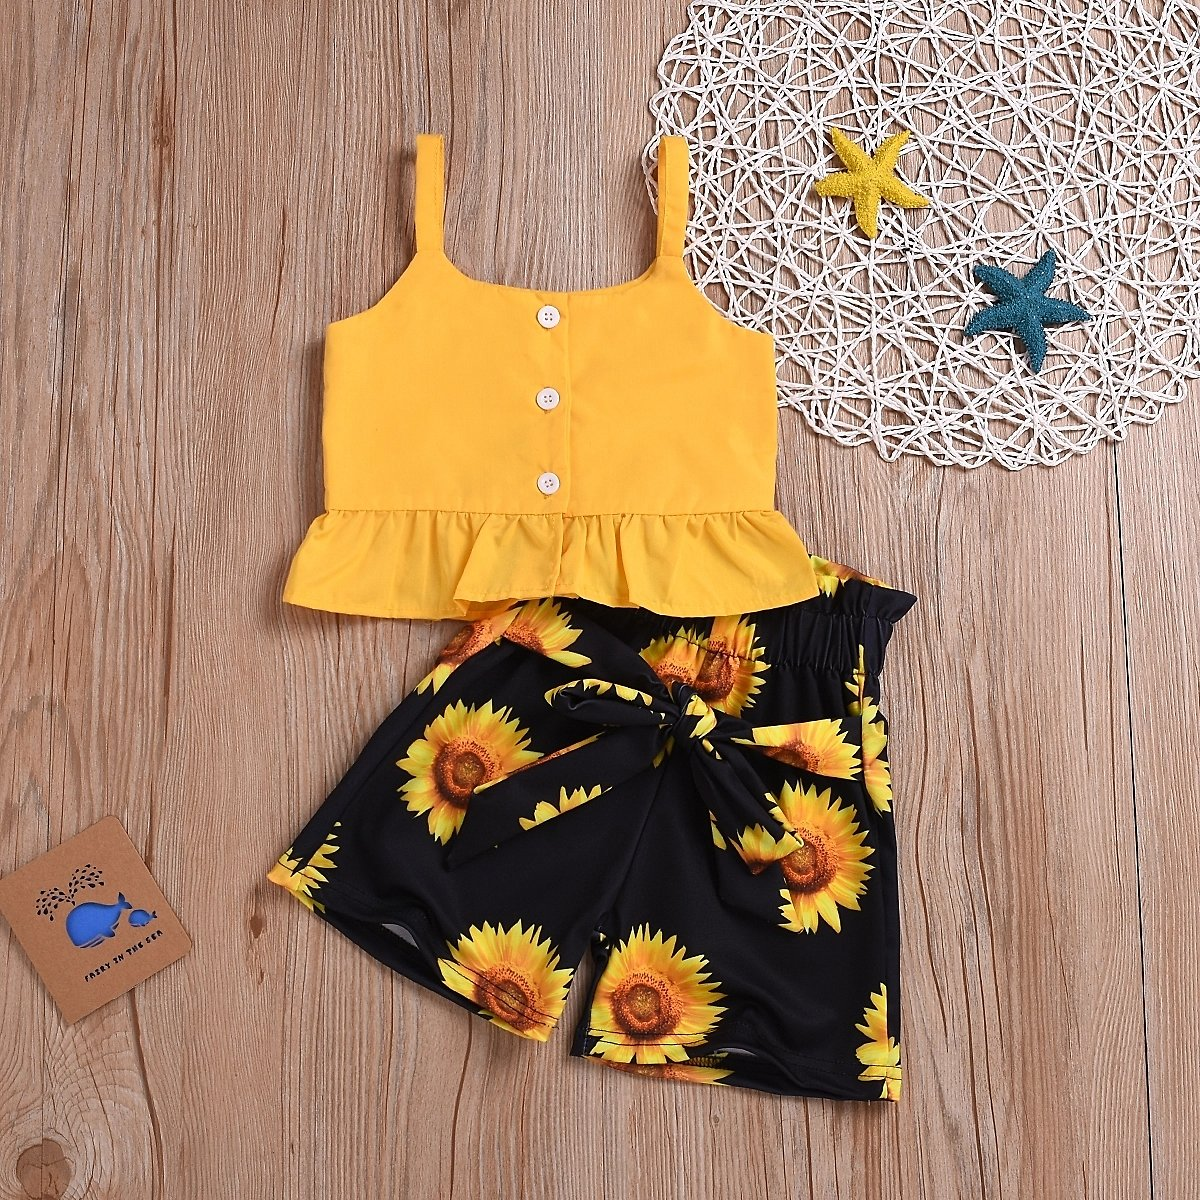 Baby / Toddler Solid Strappy Top and Sunflower Print Shorts Sets